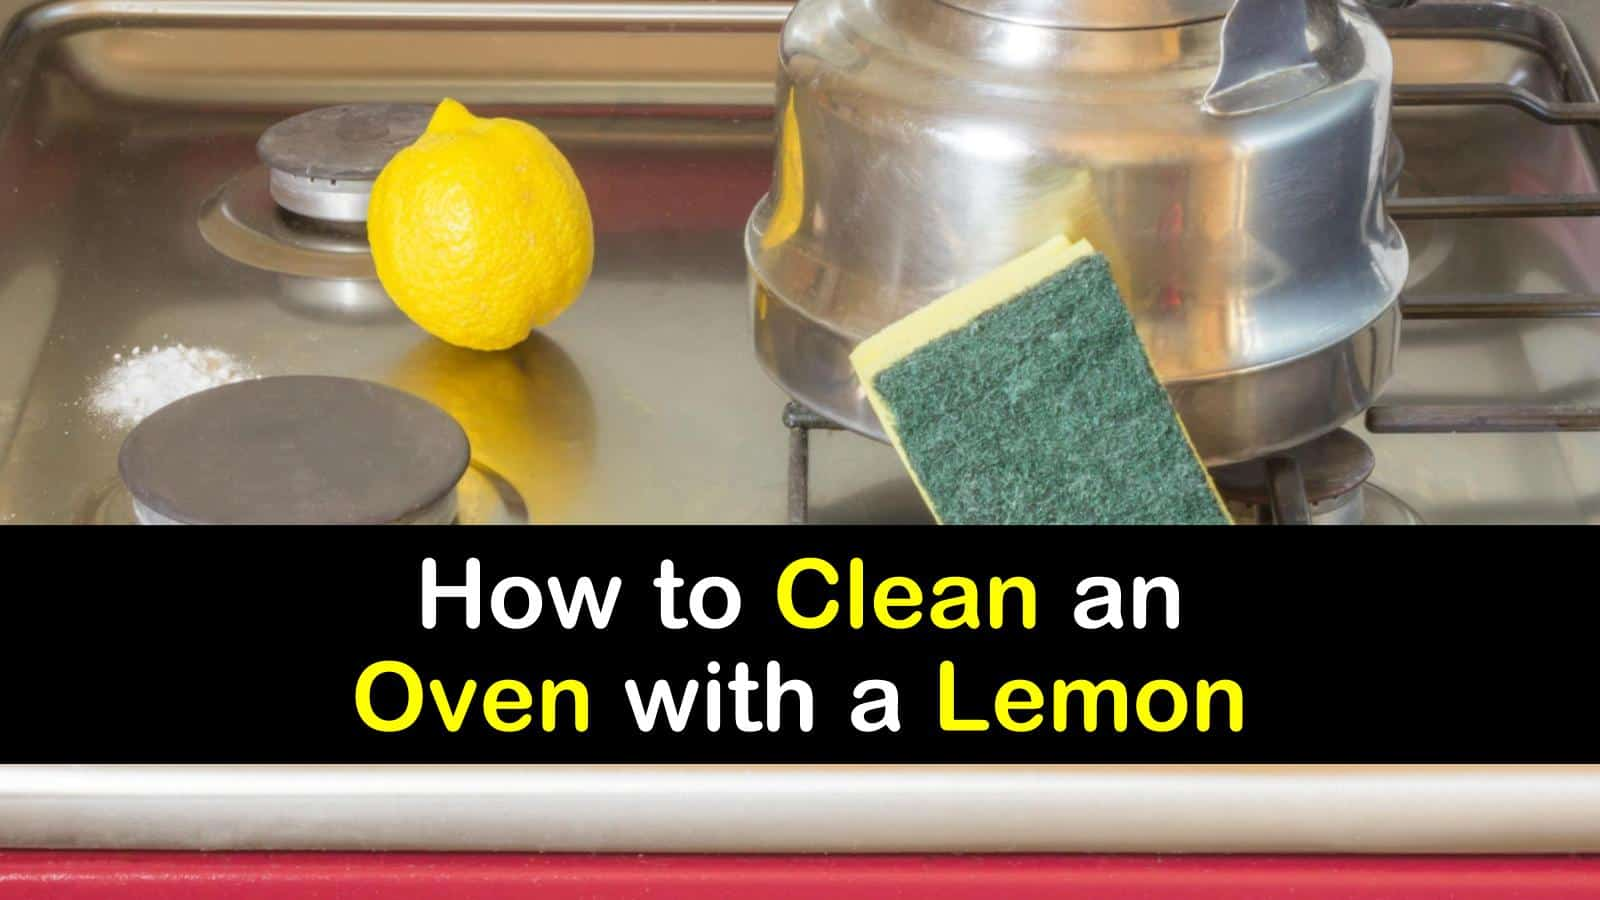 how to clean an oven with a lemon titleimg1